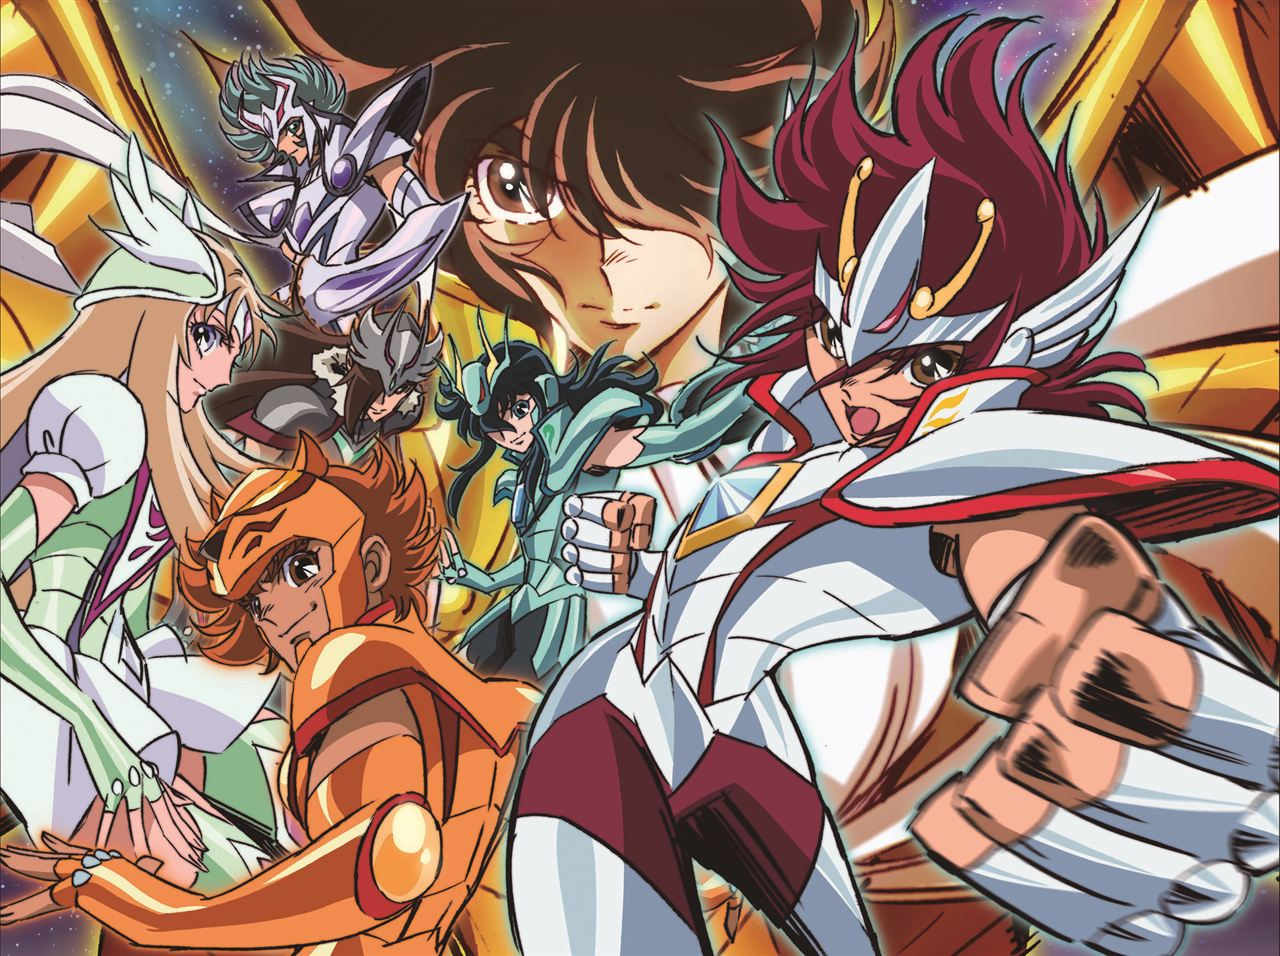 El anime Saint Seiya Omega tendra su propio manga con nuevos personajes